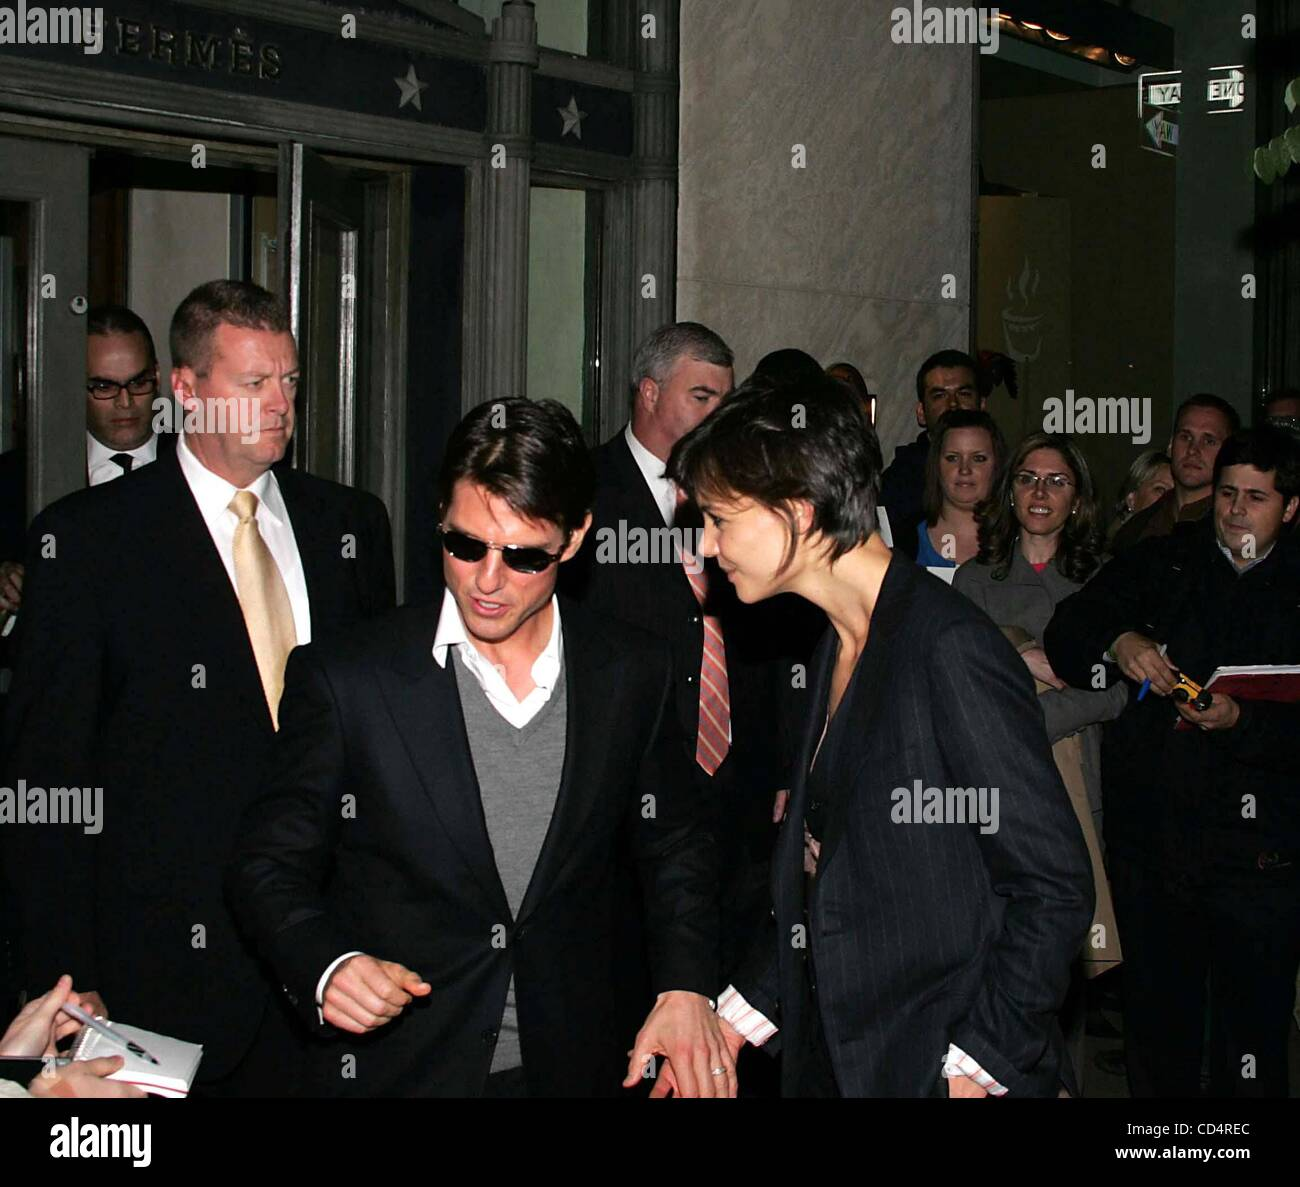 Oct. 20, 2008 - New York, New York, U.S. - CELEBRITY LADEN PRIVATE PARTY AT HERMES.MADISON AVENUE    10-20-2008. Stock Photo